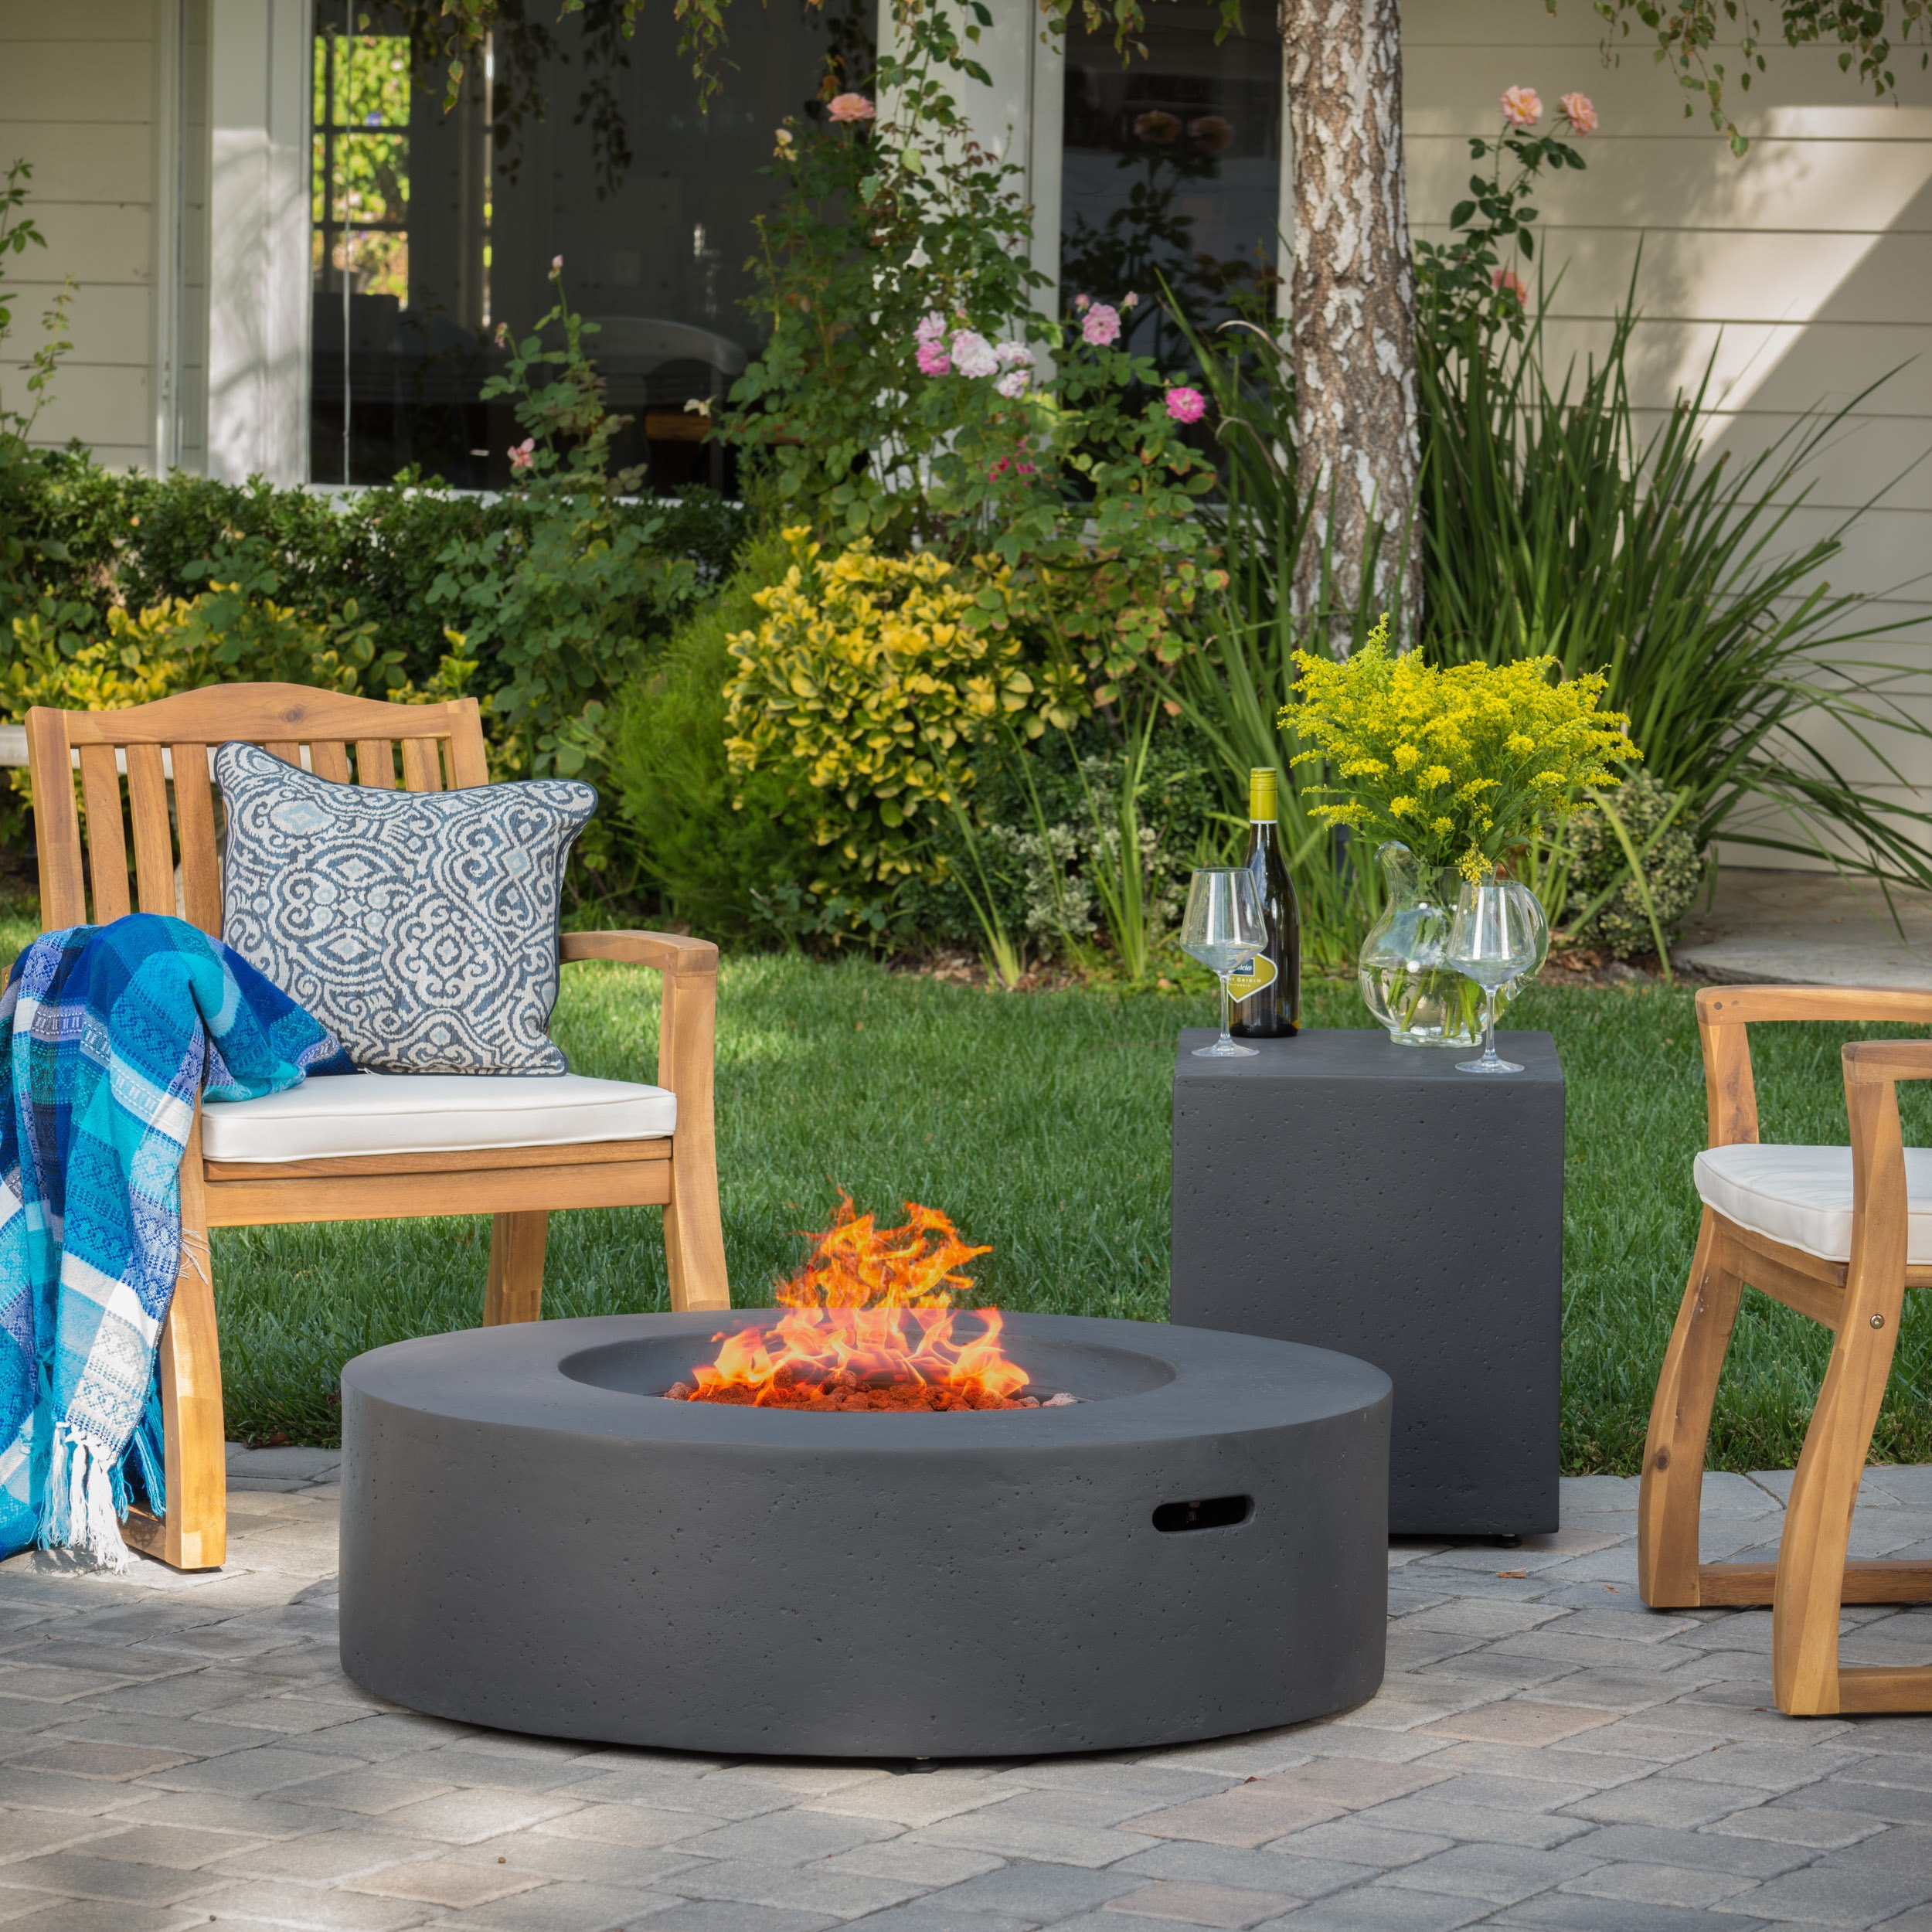 Shop Santos Outdoor Circular Propane Fire Pit Table With Tank Holder By  Christopher Knight Home   On Sale   Free Shipping Today   Overstock.com    13181165